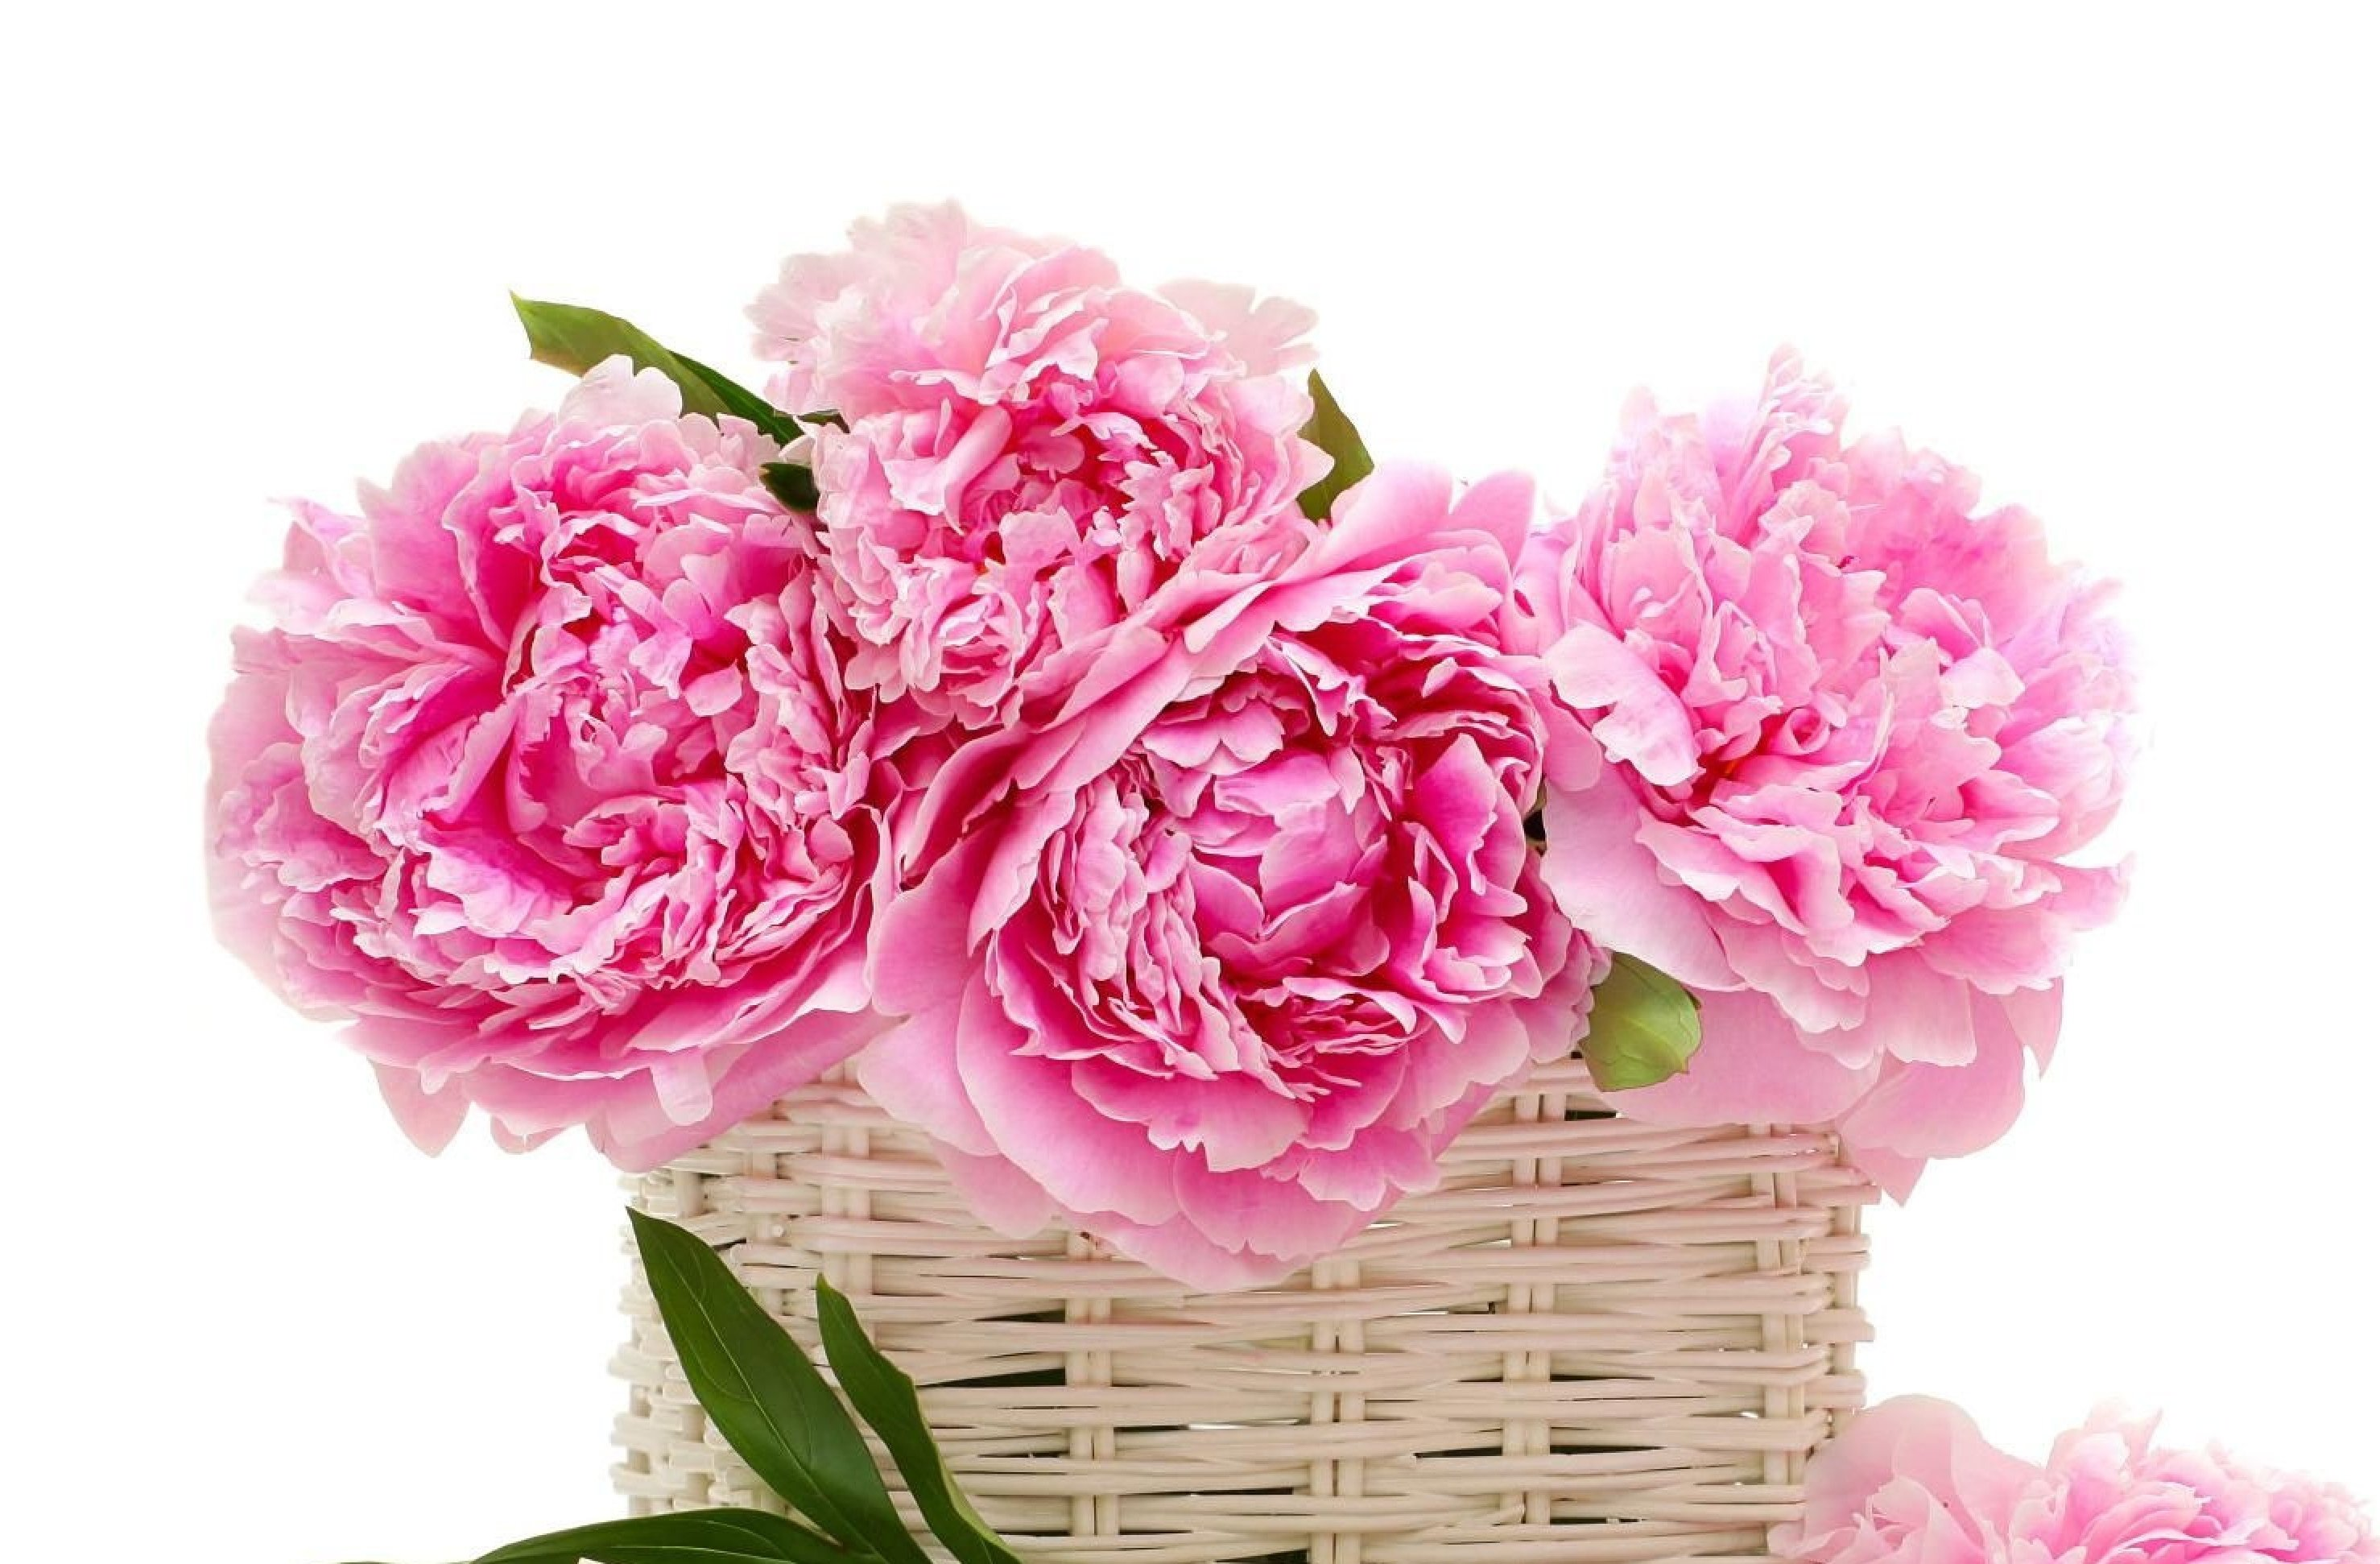 rsz_peonies_flower_basket_leaf_pencils_crayons_note_love_recognition_20651_3840x2160